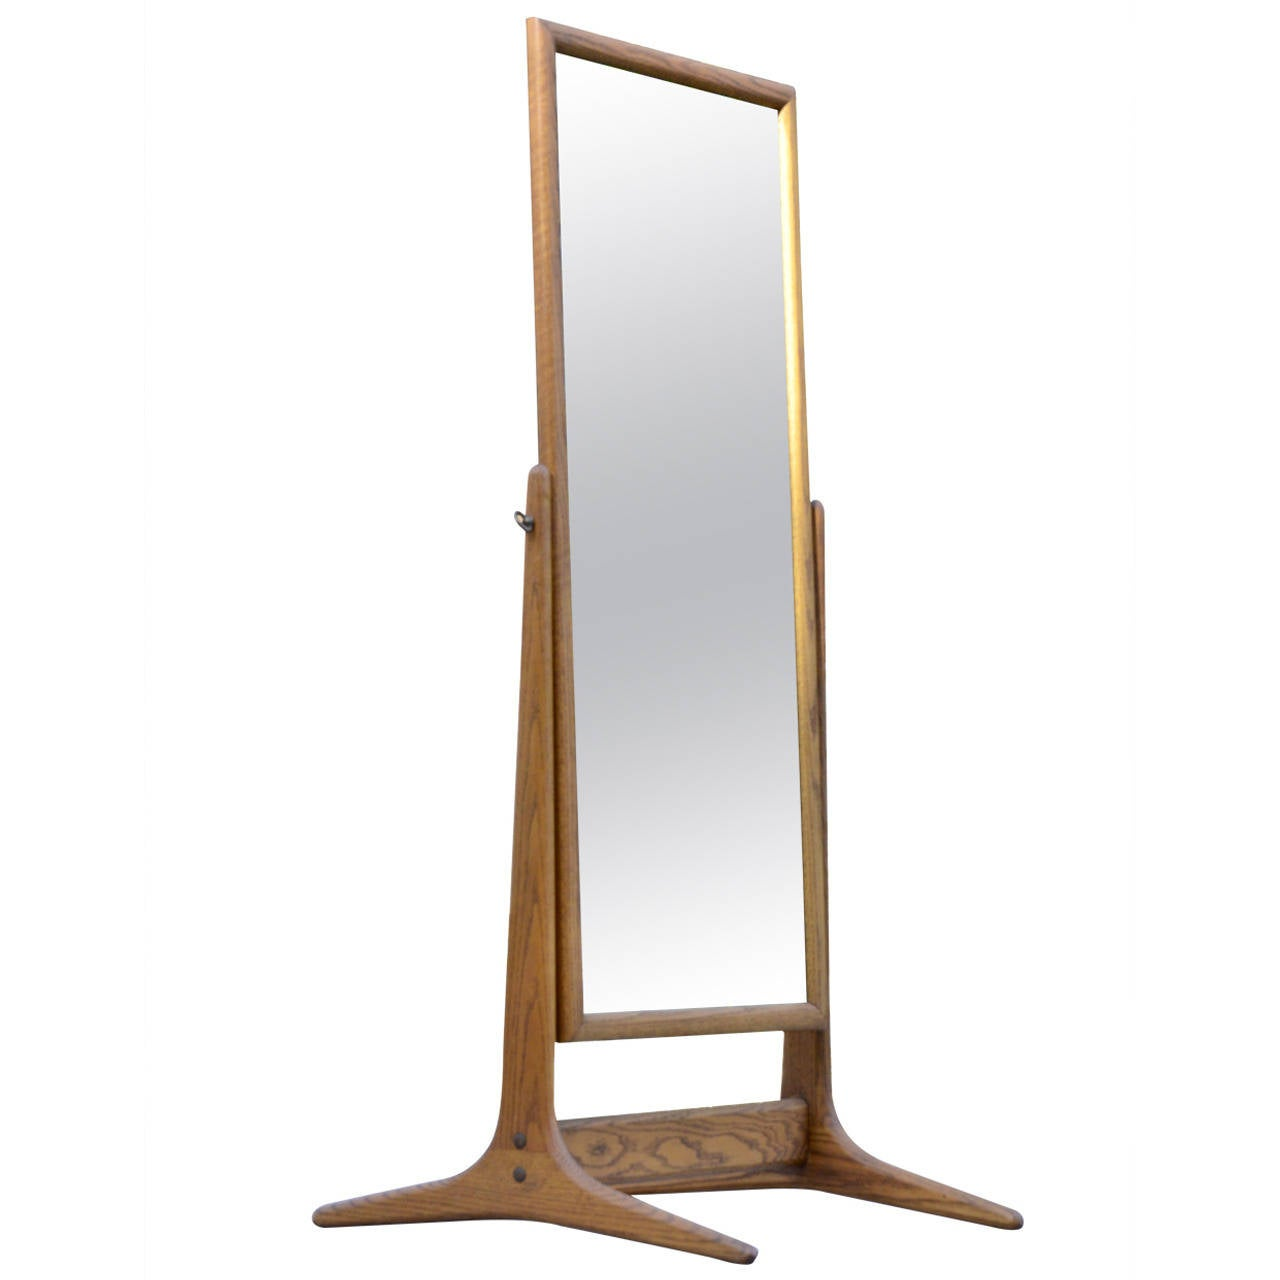 Mid century modern cheval mirror at 1stdibs for Cheval mirror